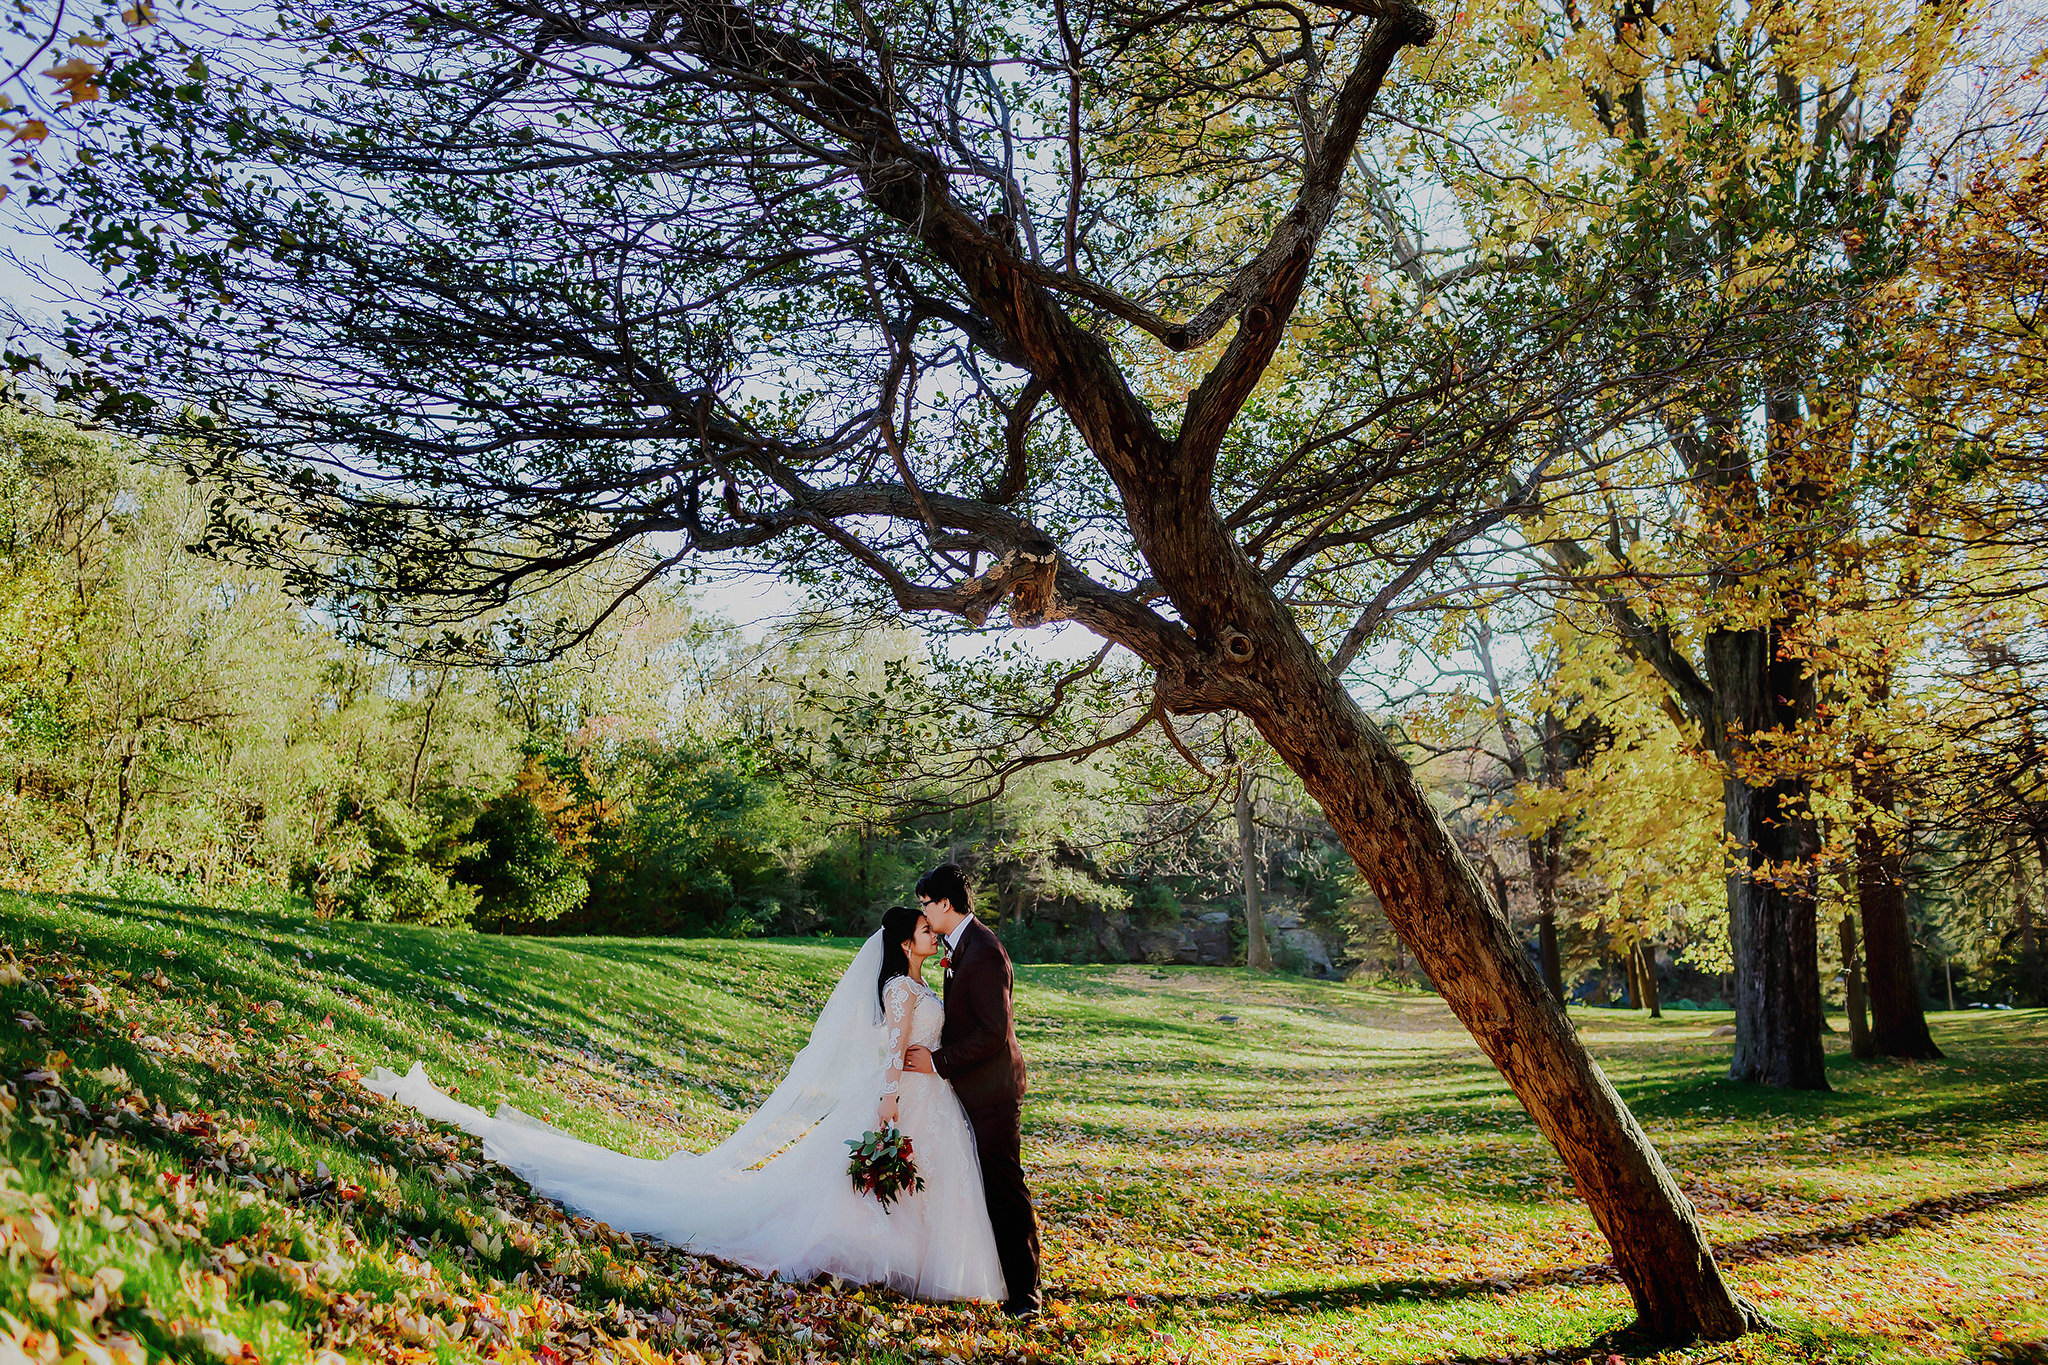 Wedding portrait by unusual tree in Montreal park